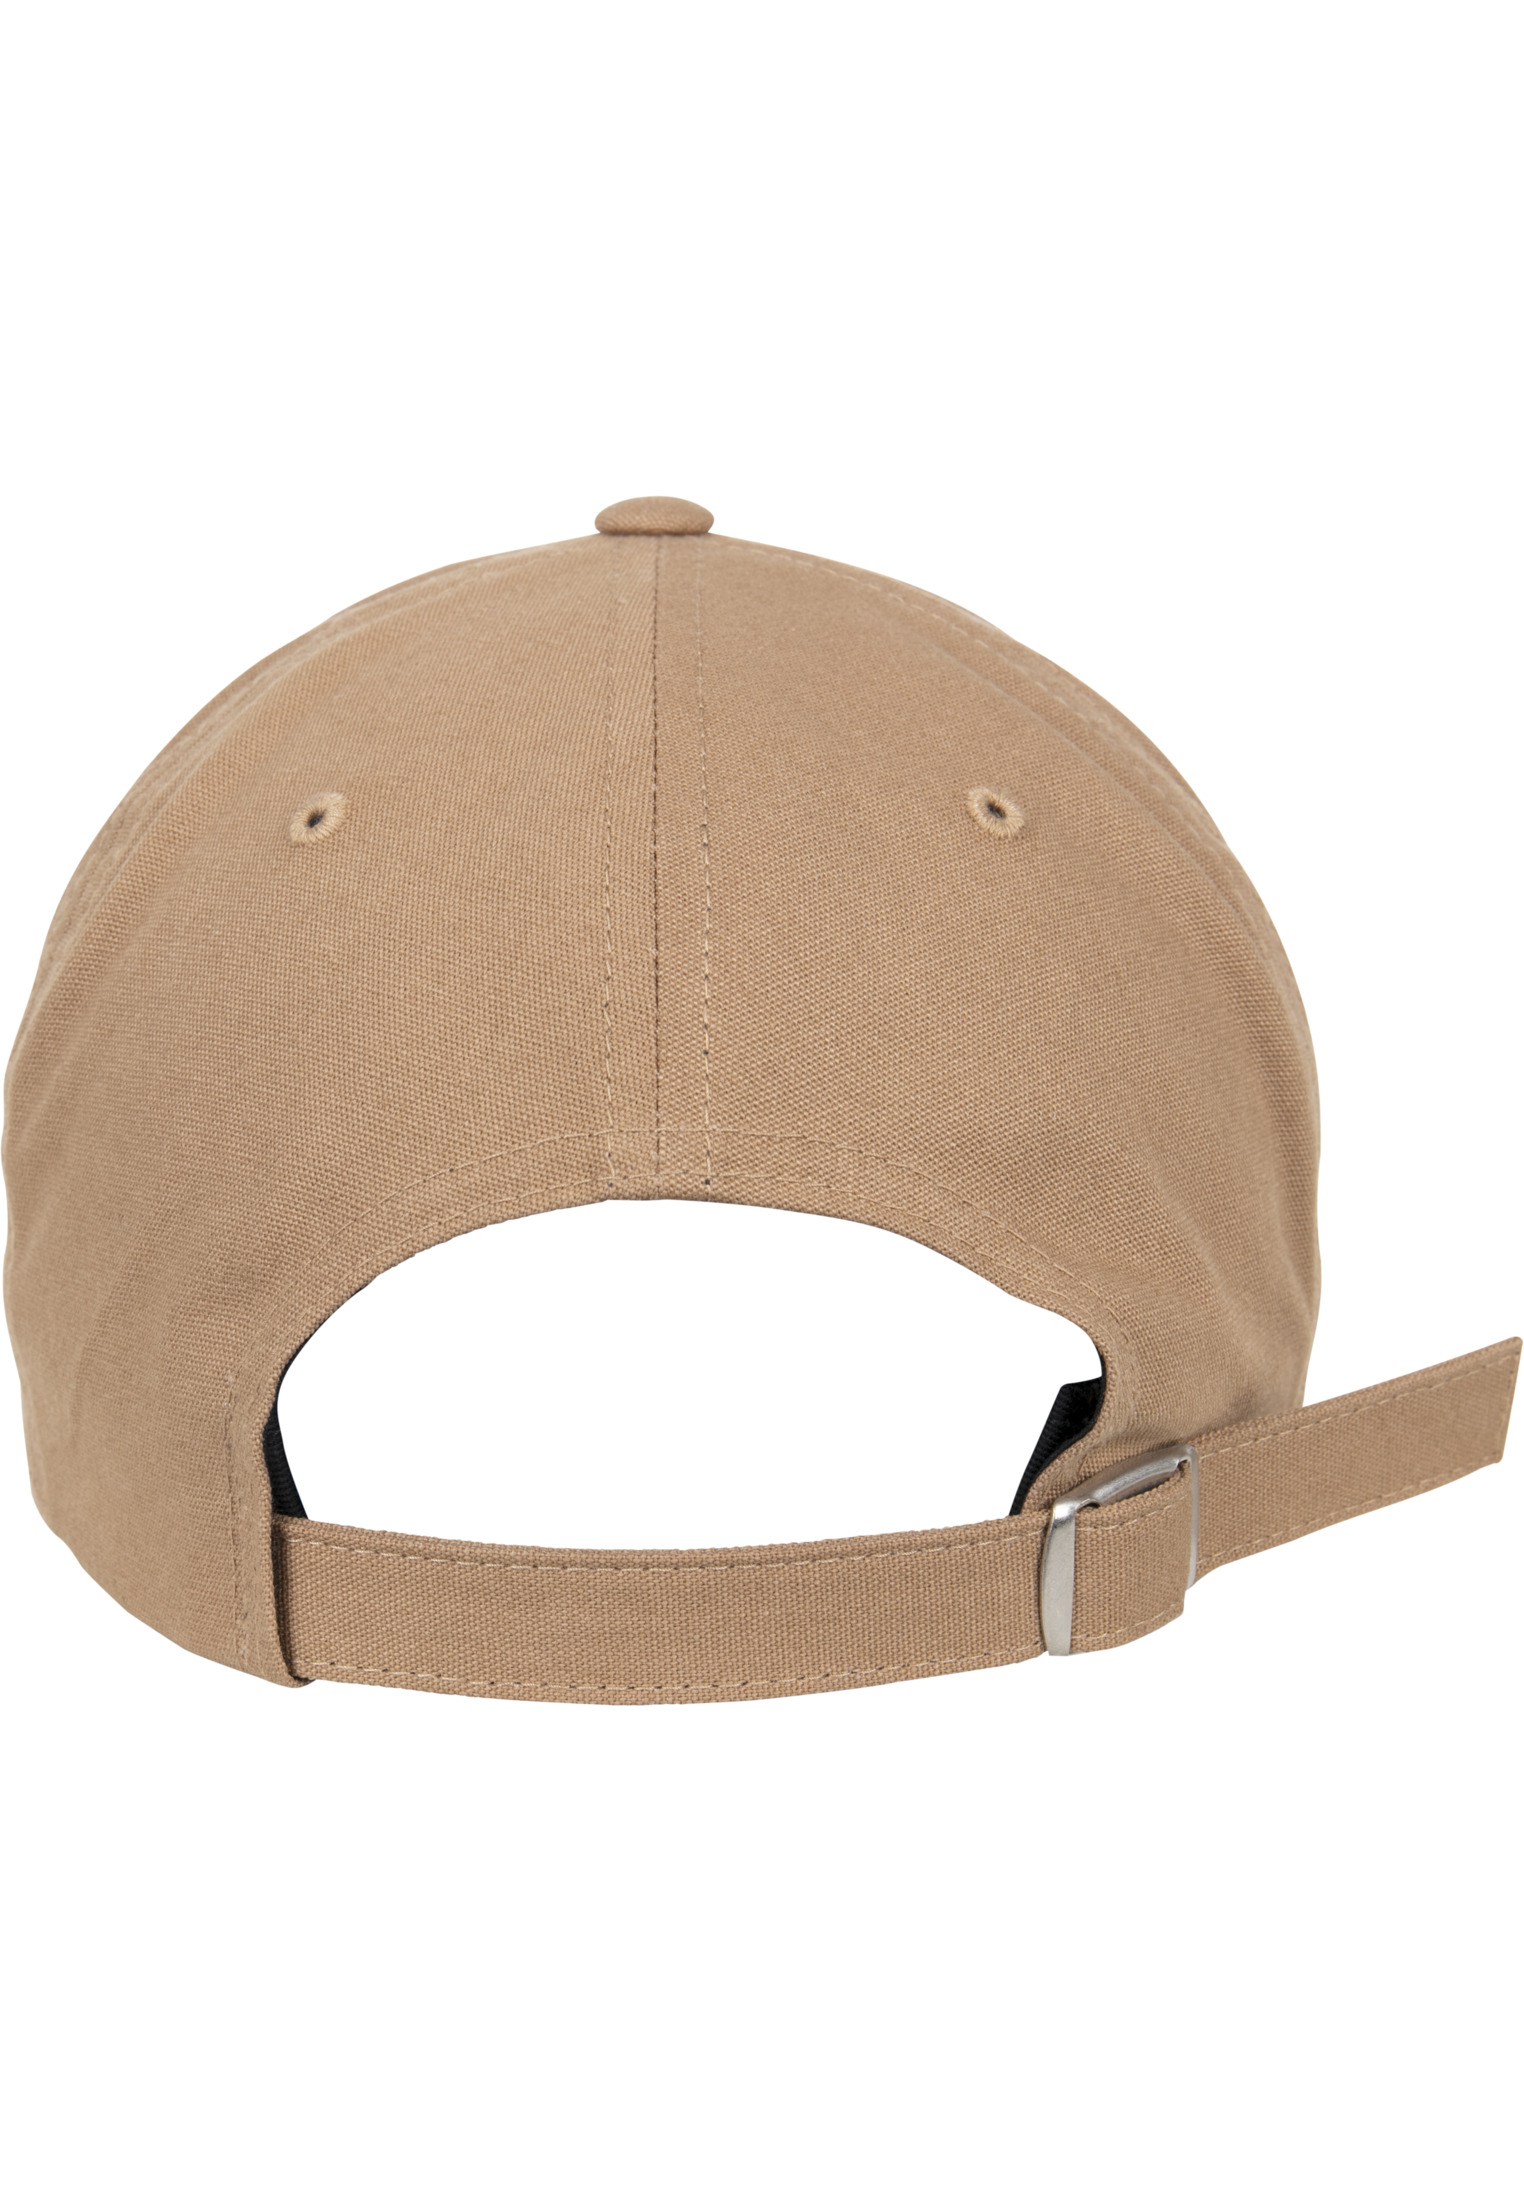 6 Panel Curved Metal Snap 7708ms